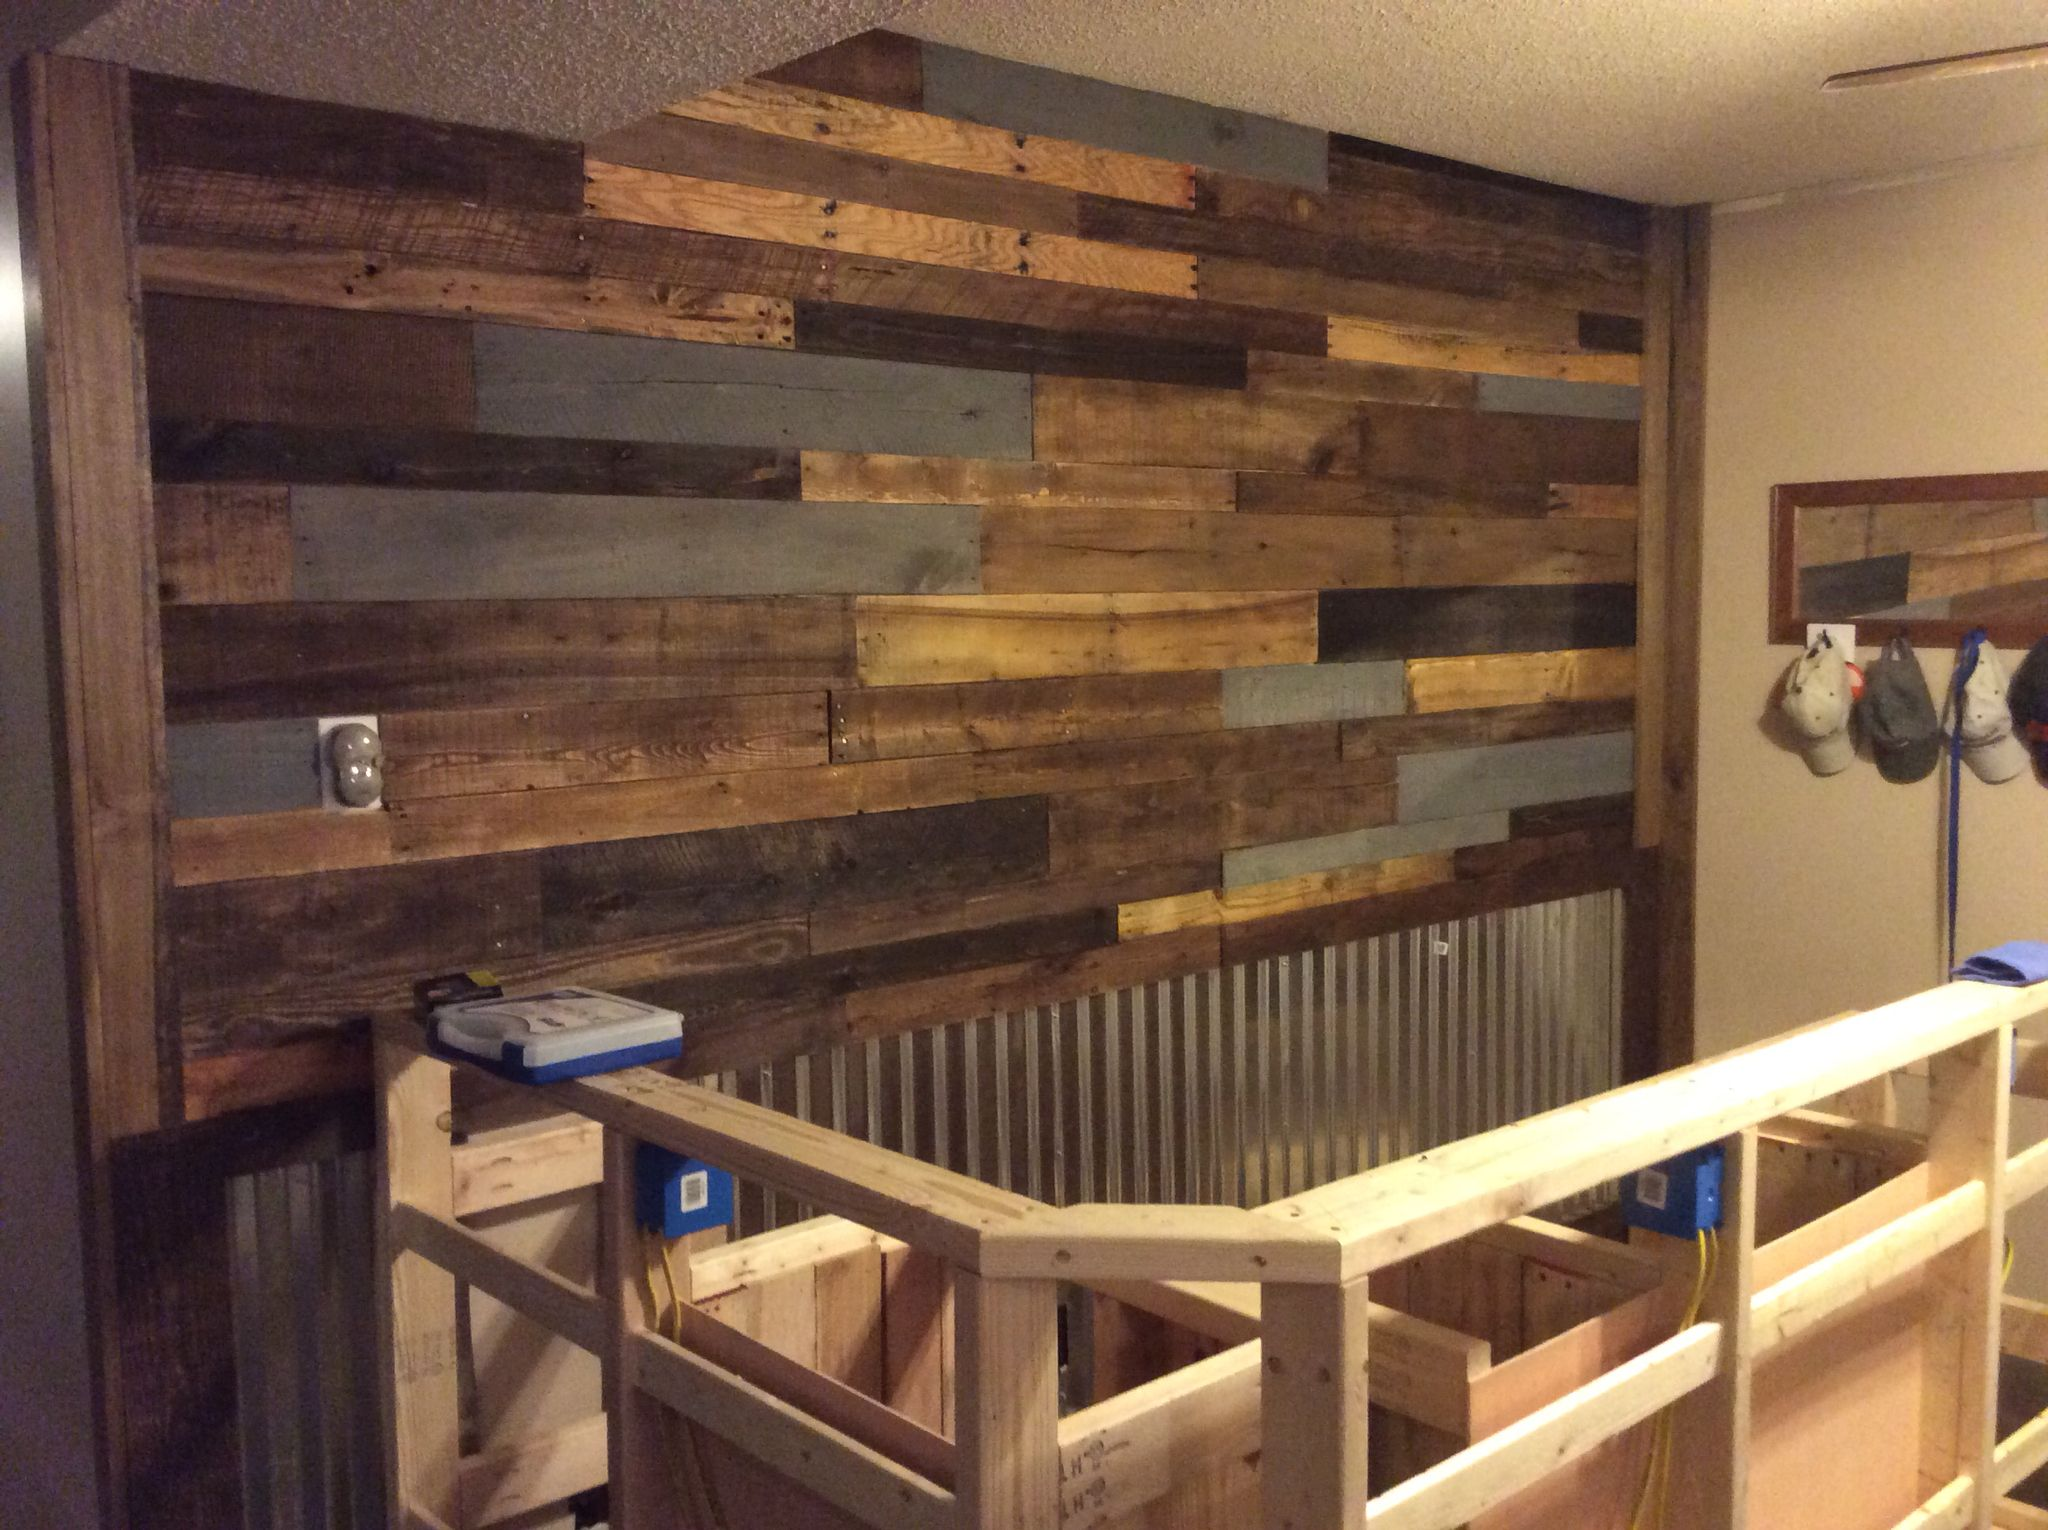 Attractive The Pallet Wall Behind The Bar Is Done. One Step Closer.